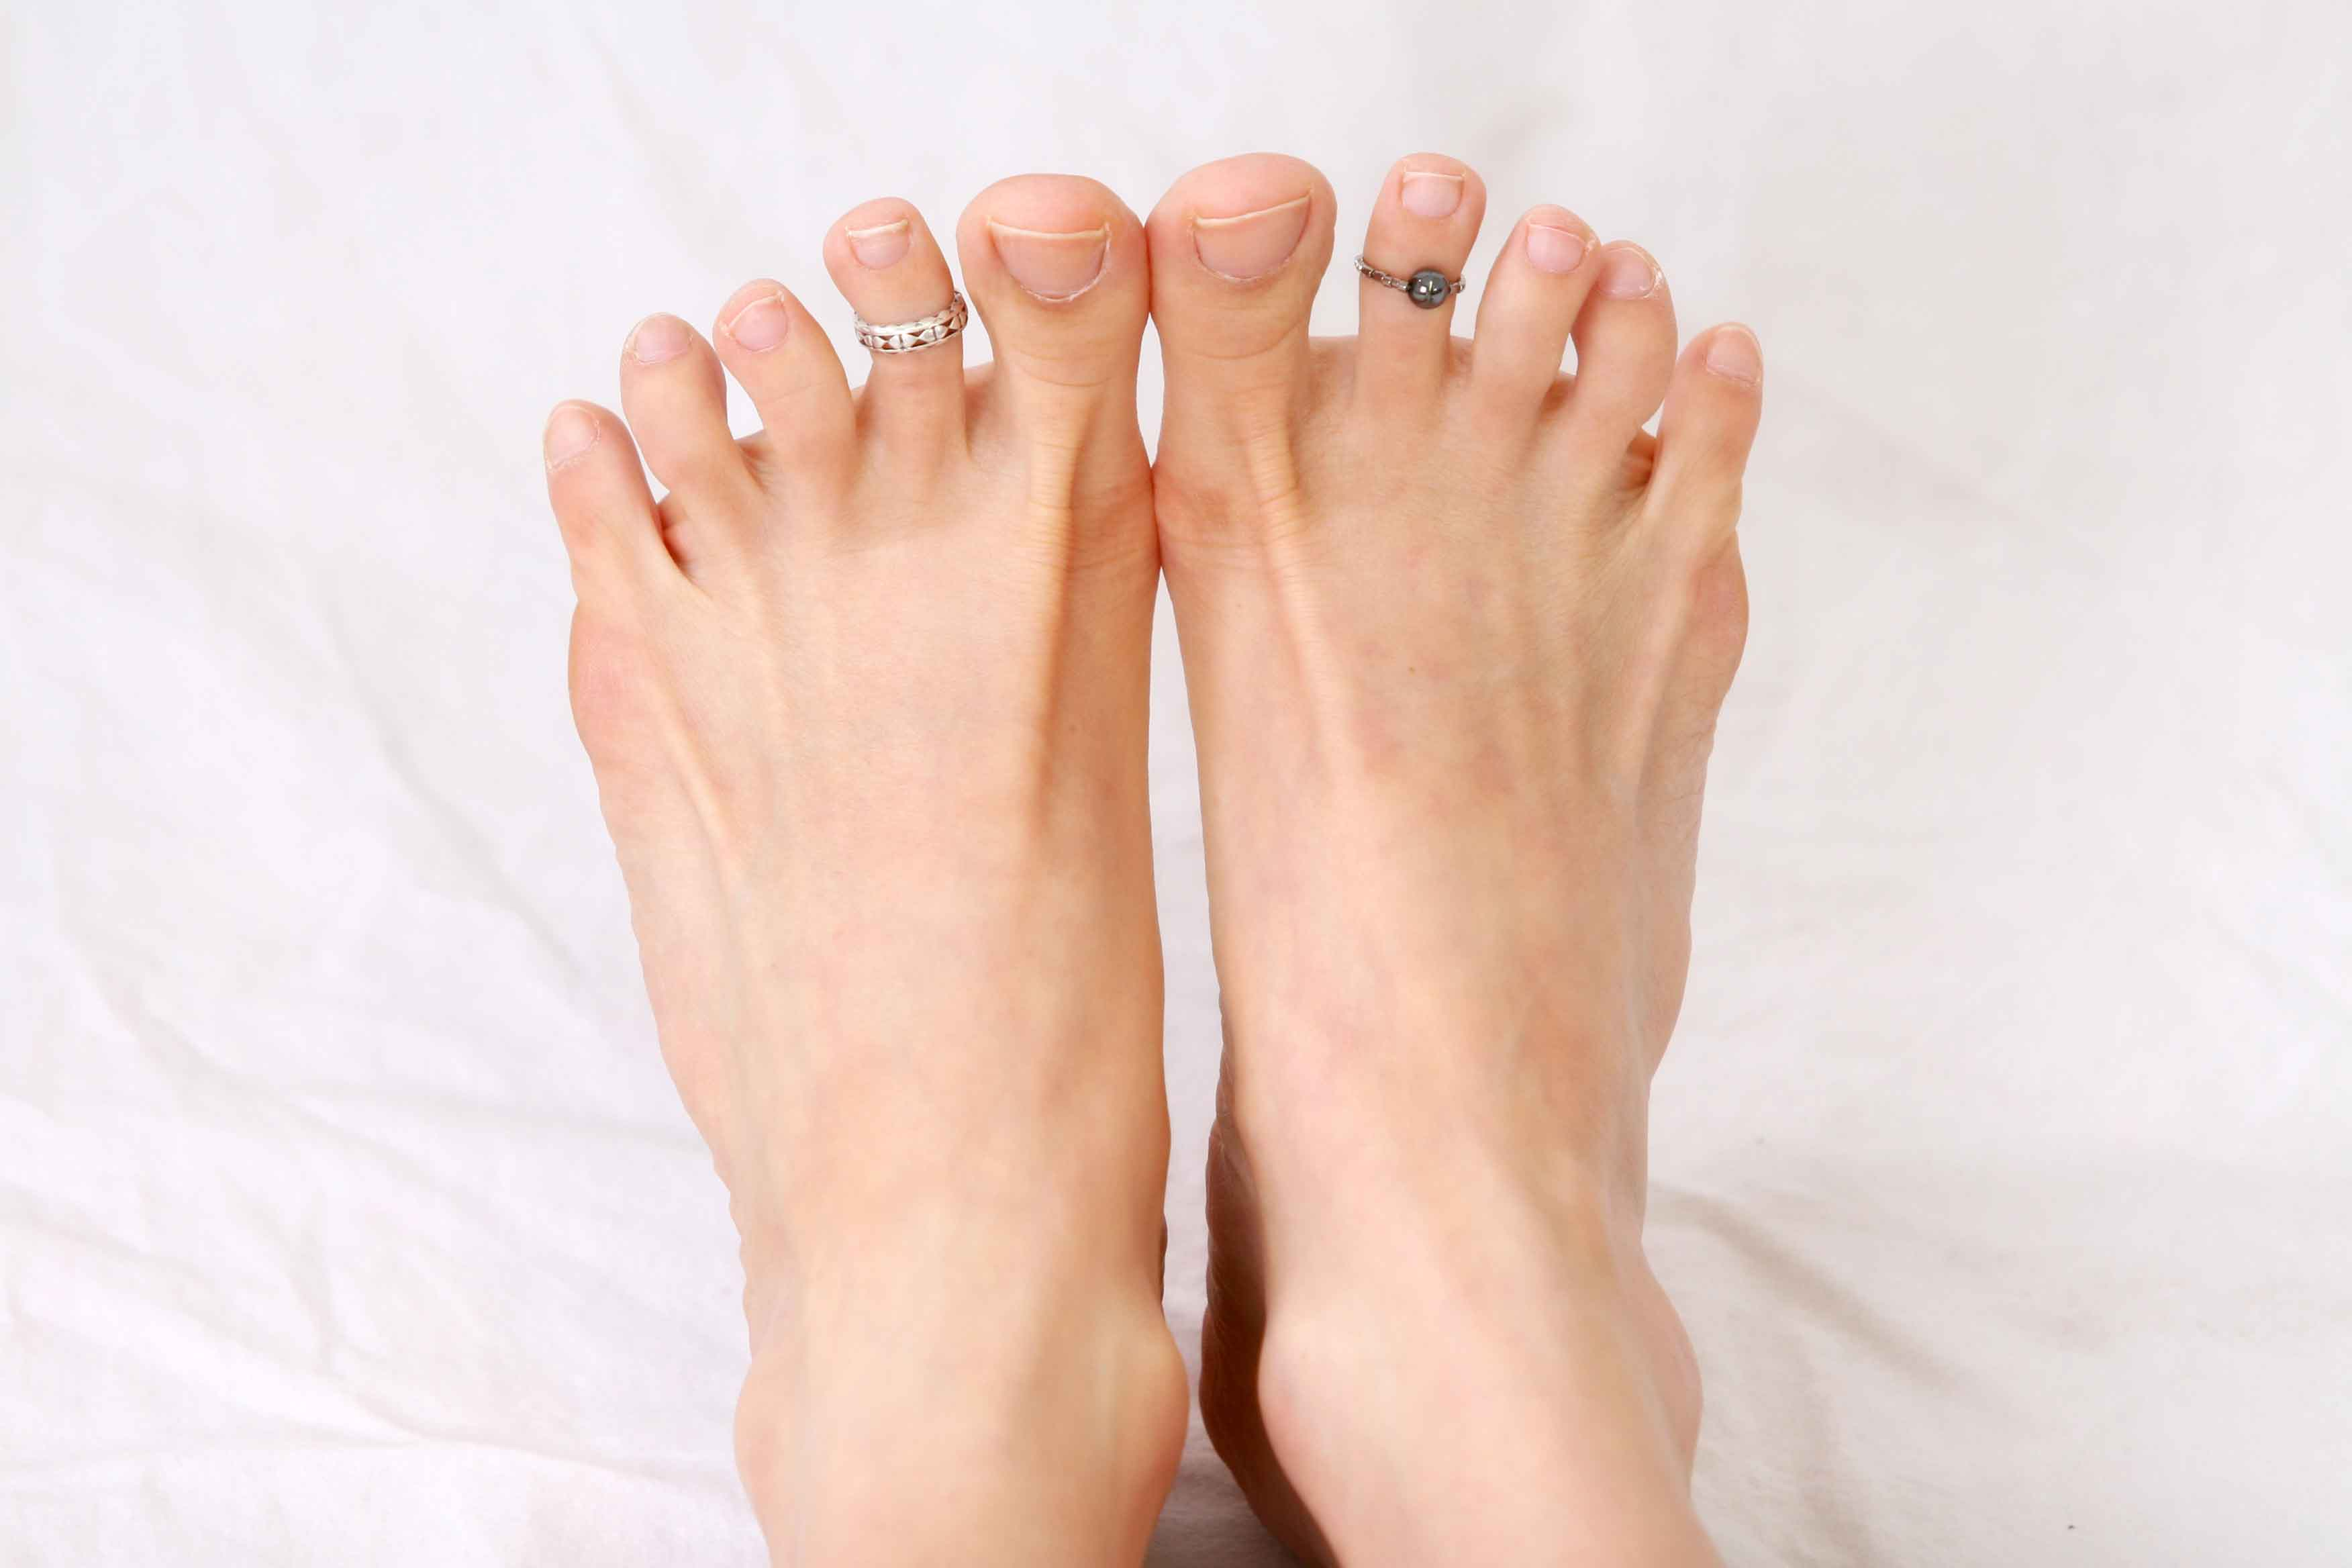 Yoga: Help for Foot Cramps, Plantar Fasciitis, or Tired Feet